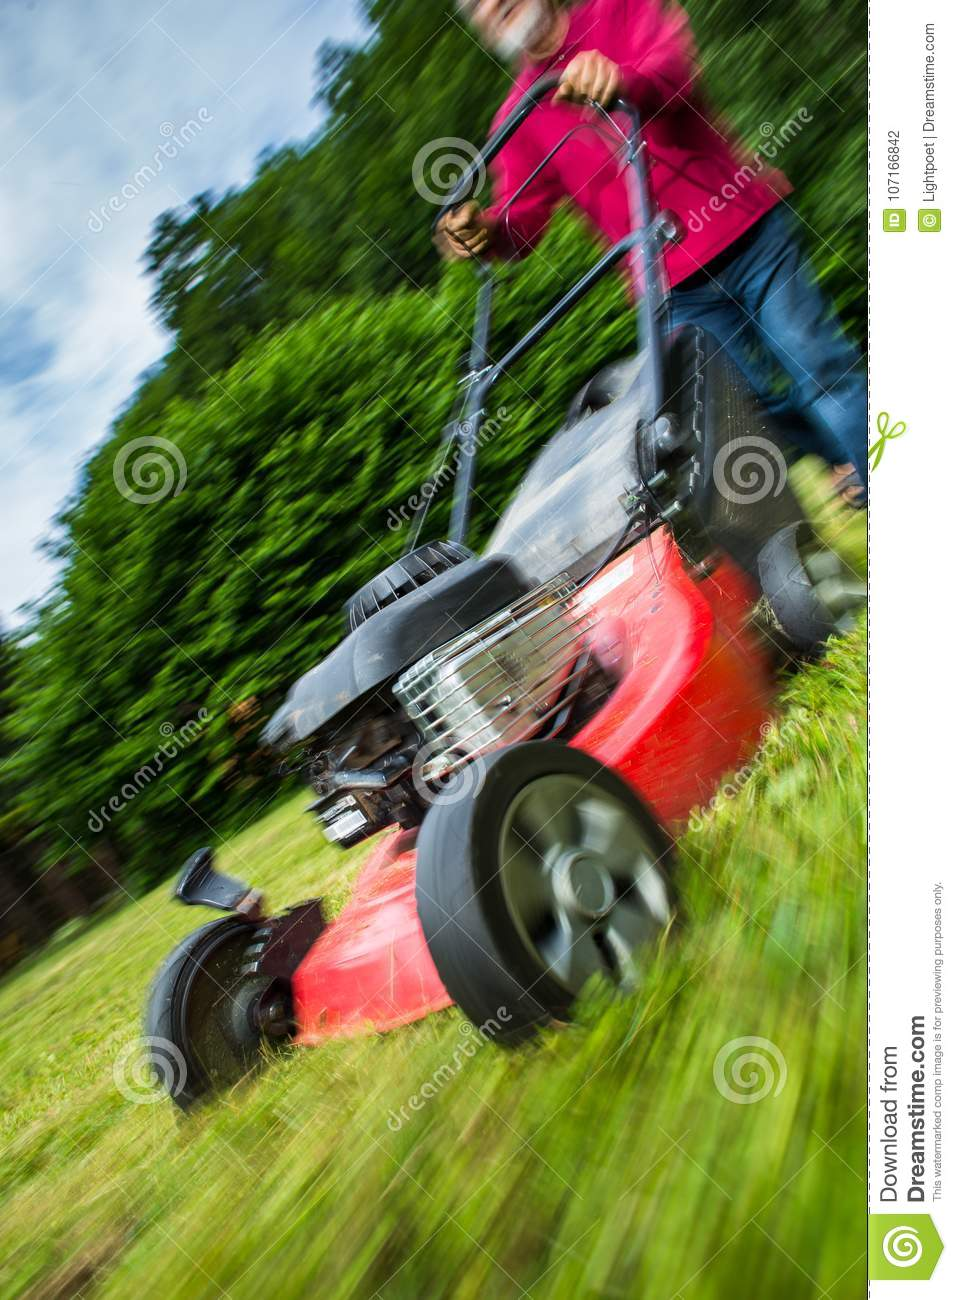 Senior Man Mowing The Lawn In His Garden Stock Photo